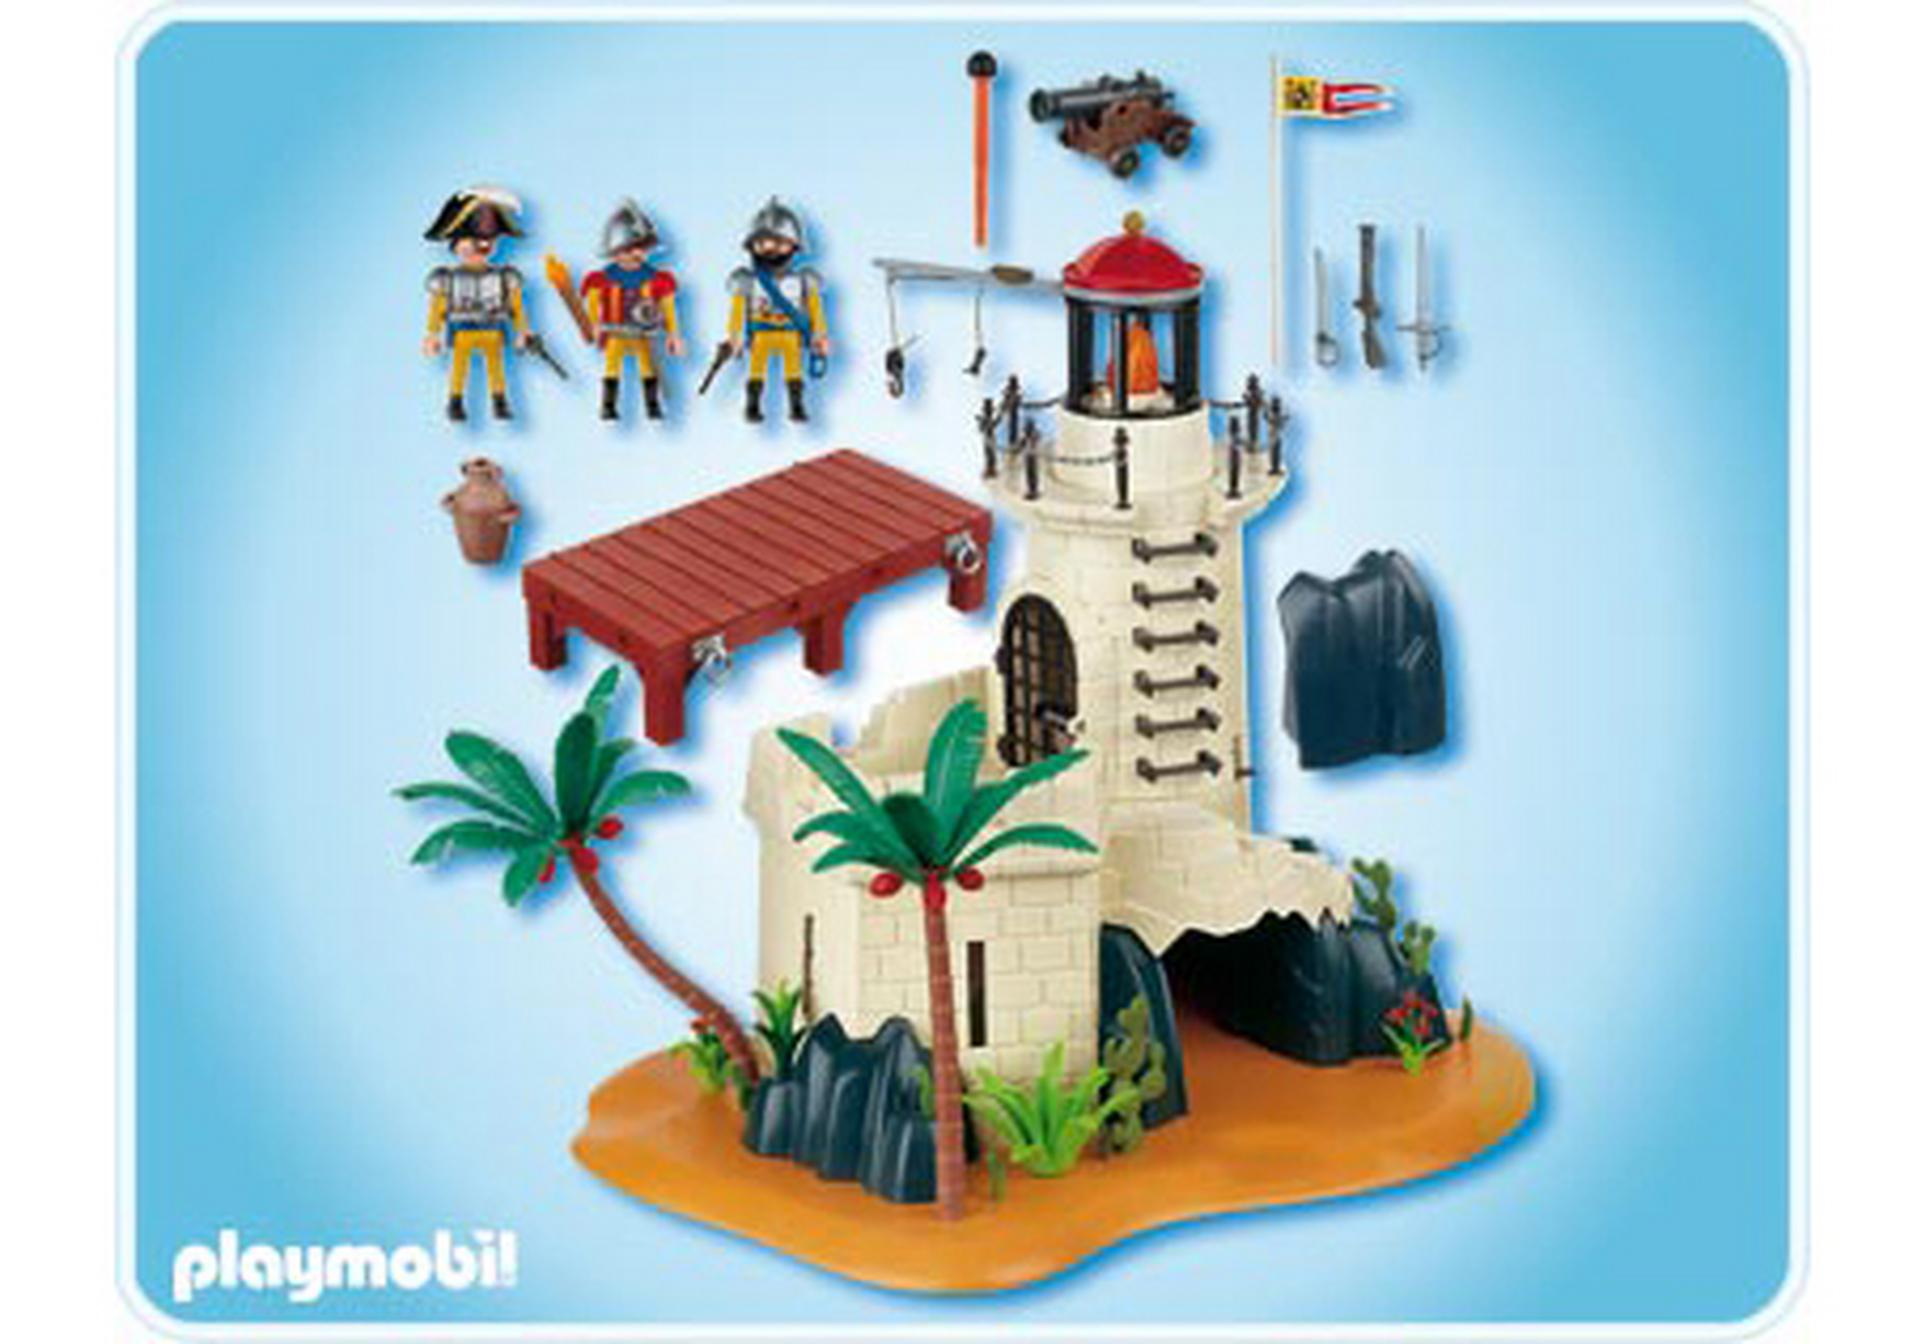 Beautiful playmobil maison moderne gallery for Maison moderne playmobil